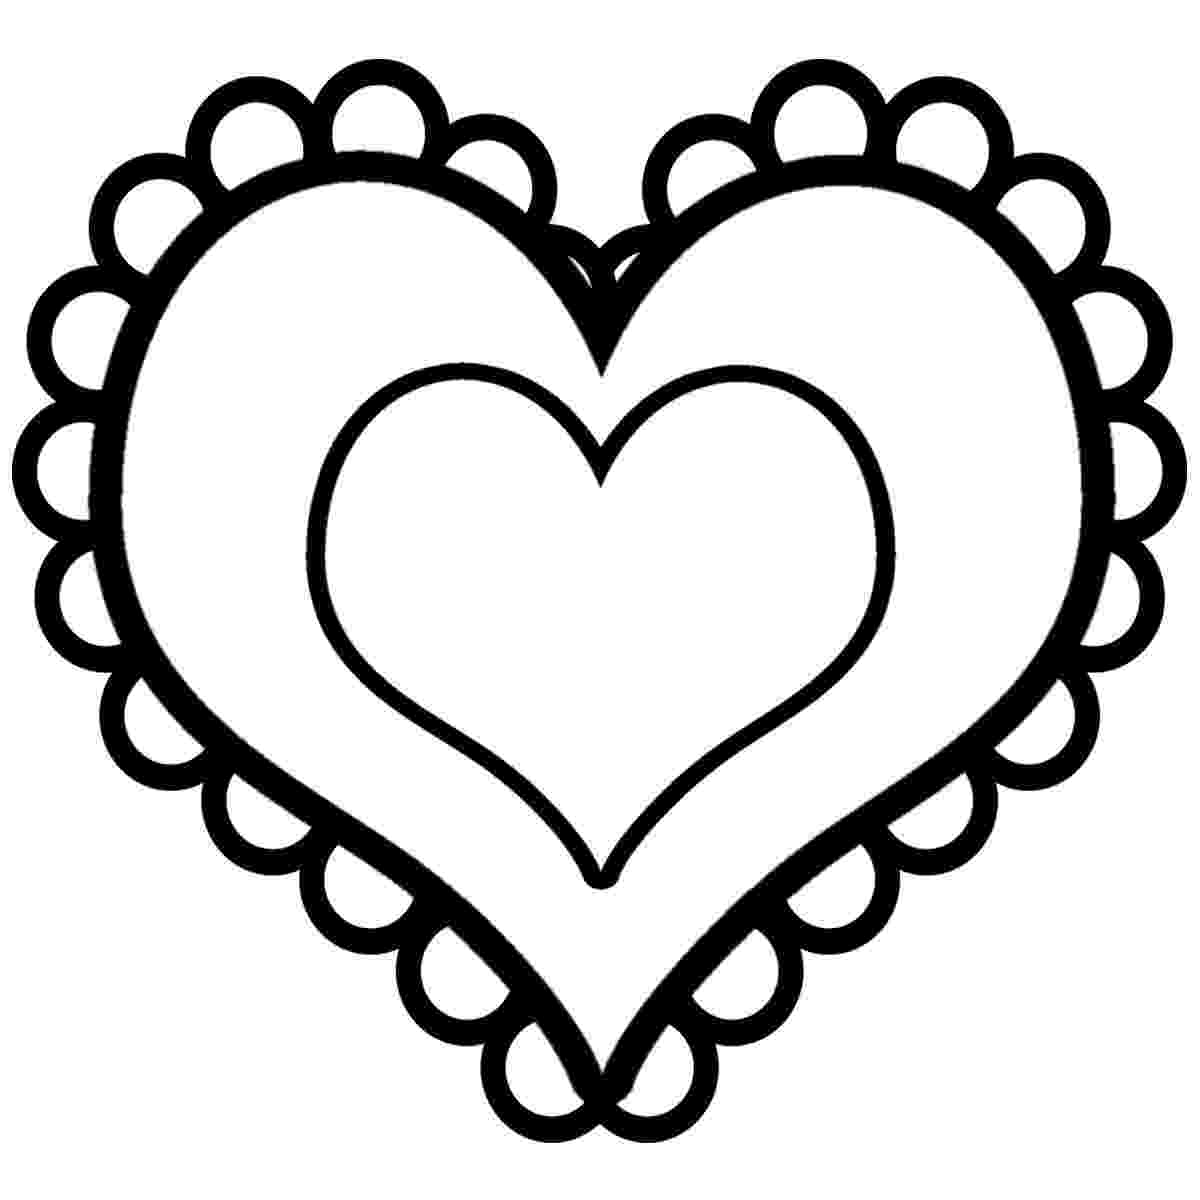 coloring pages for hearts free printable heart coloring pages for kids pages coloring hearts for